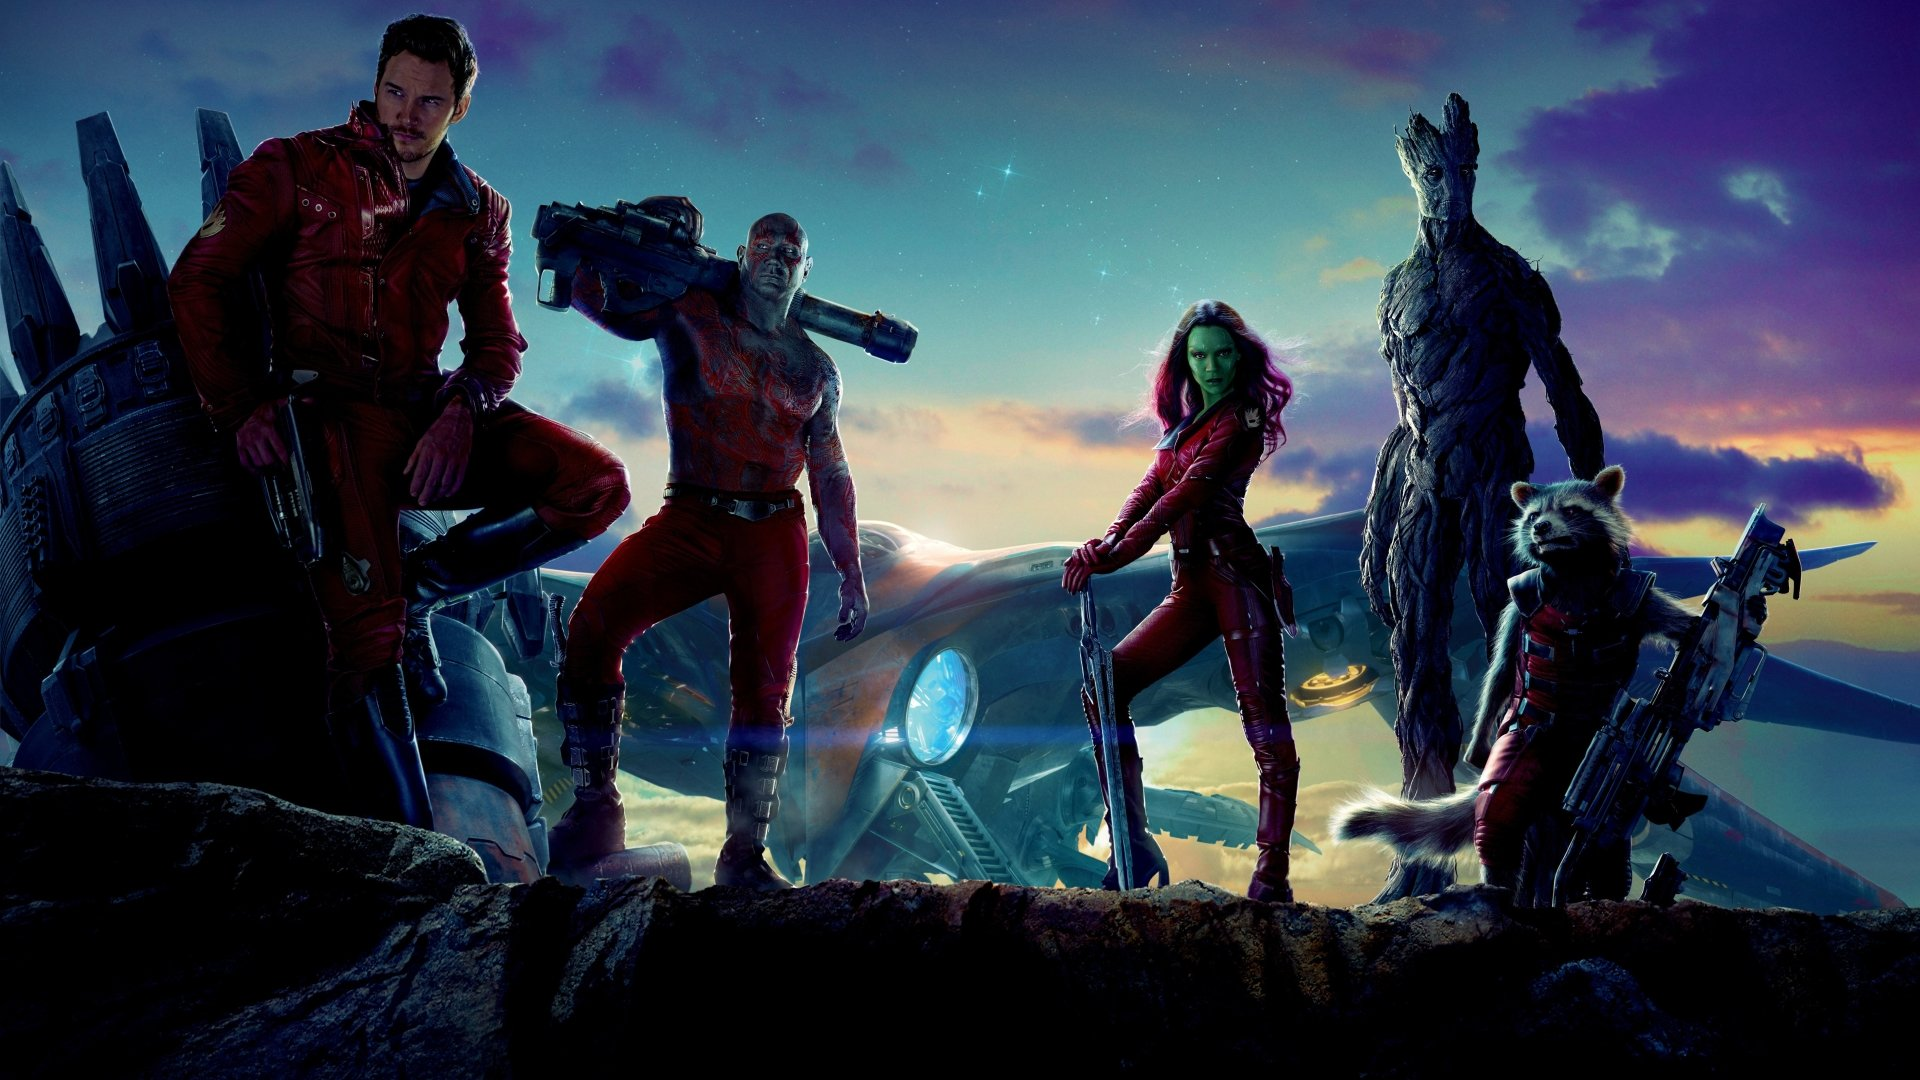 Films - Guardians of the Galaxy  Dave Bautista Zoe Saldana Chris Pratt Peter Quill Groot Drax The Destroyer Star Lord Gamora Rocket Raccoon Wallpaper